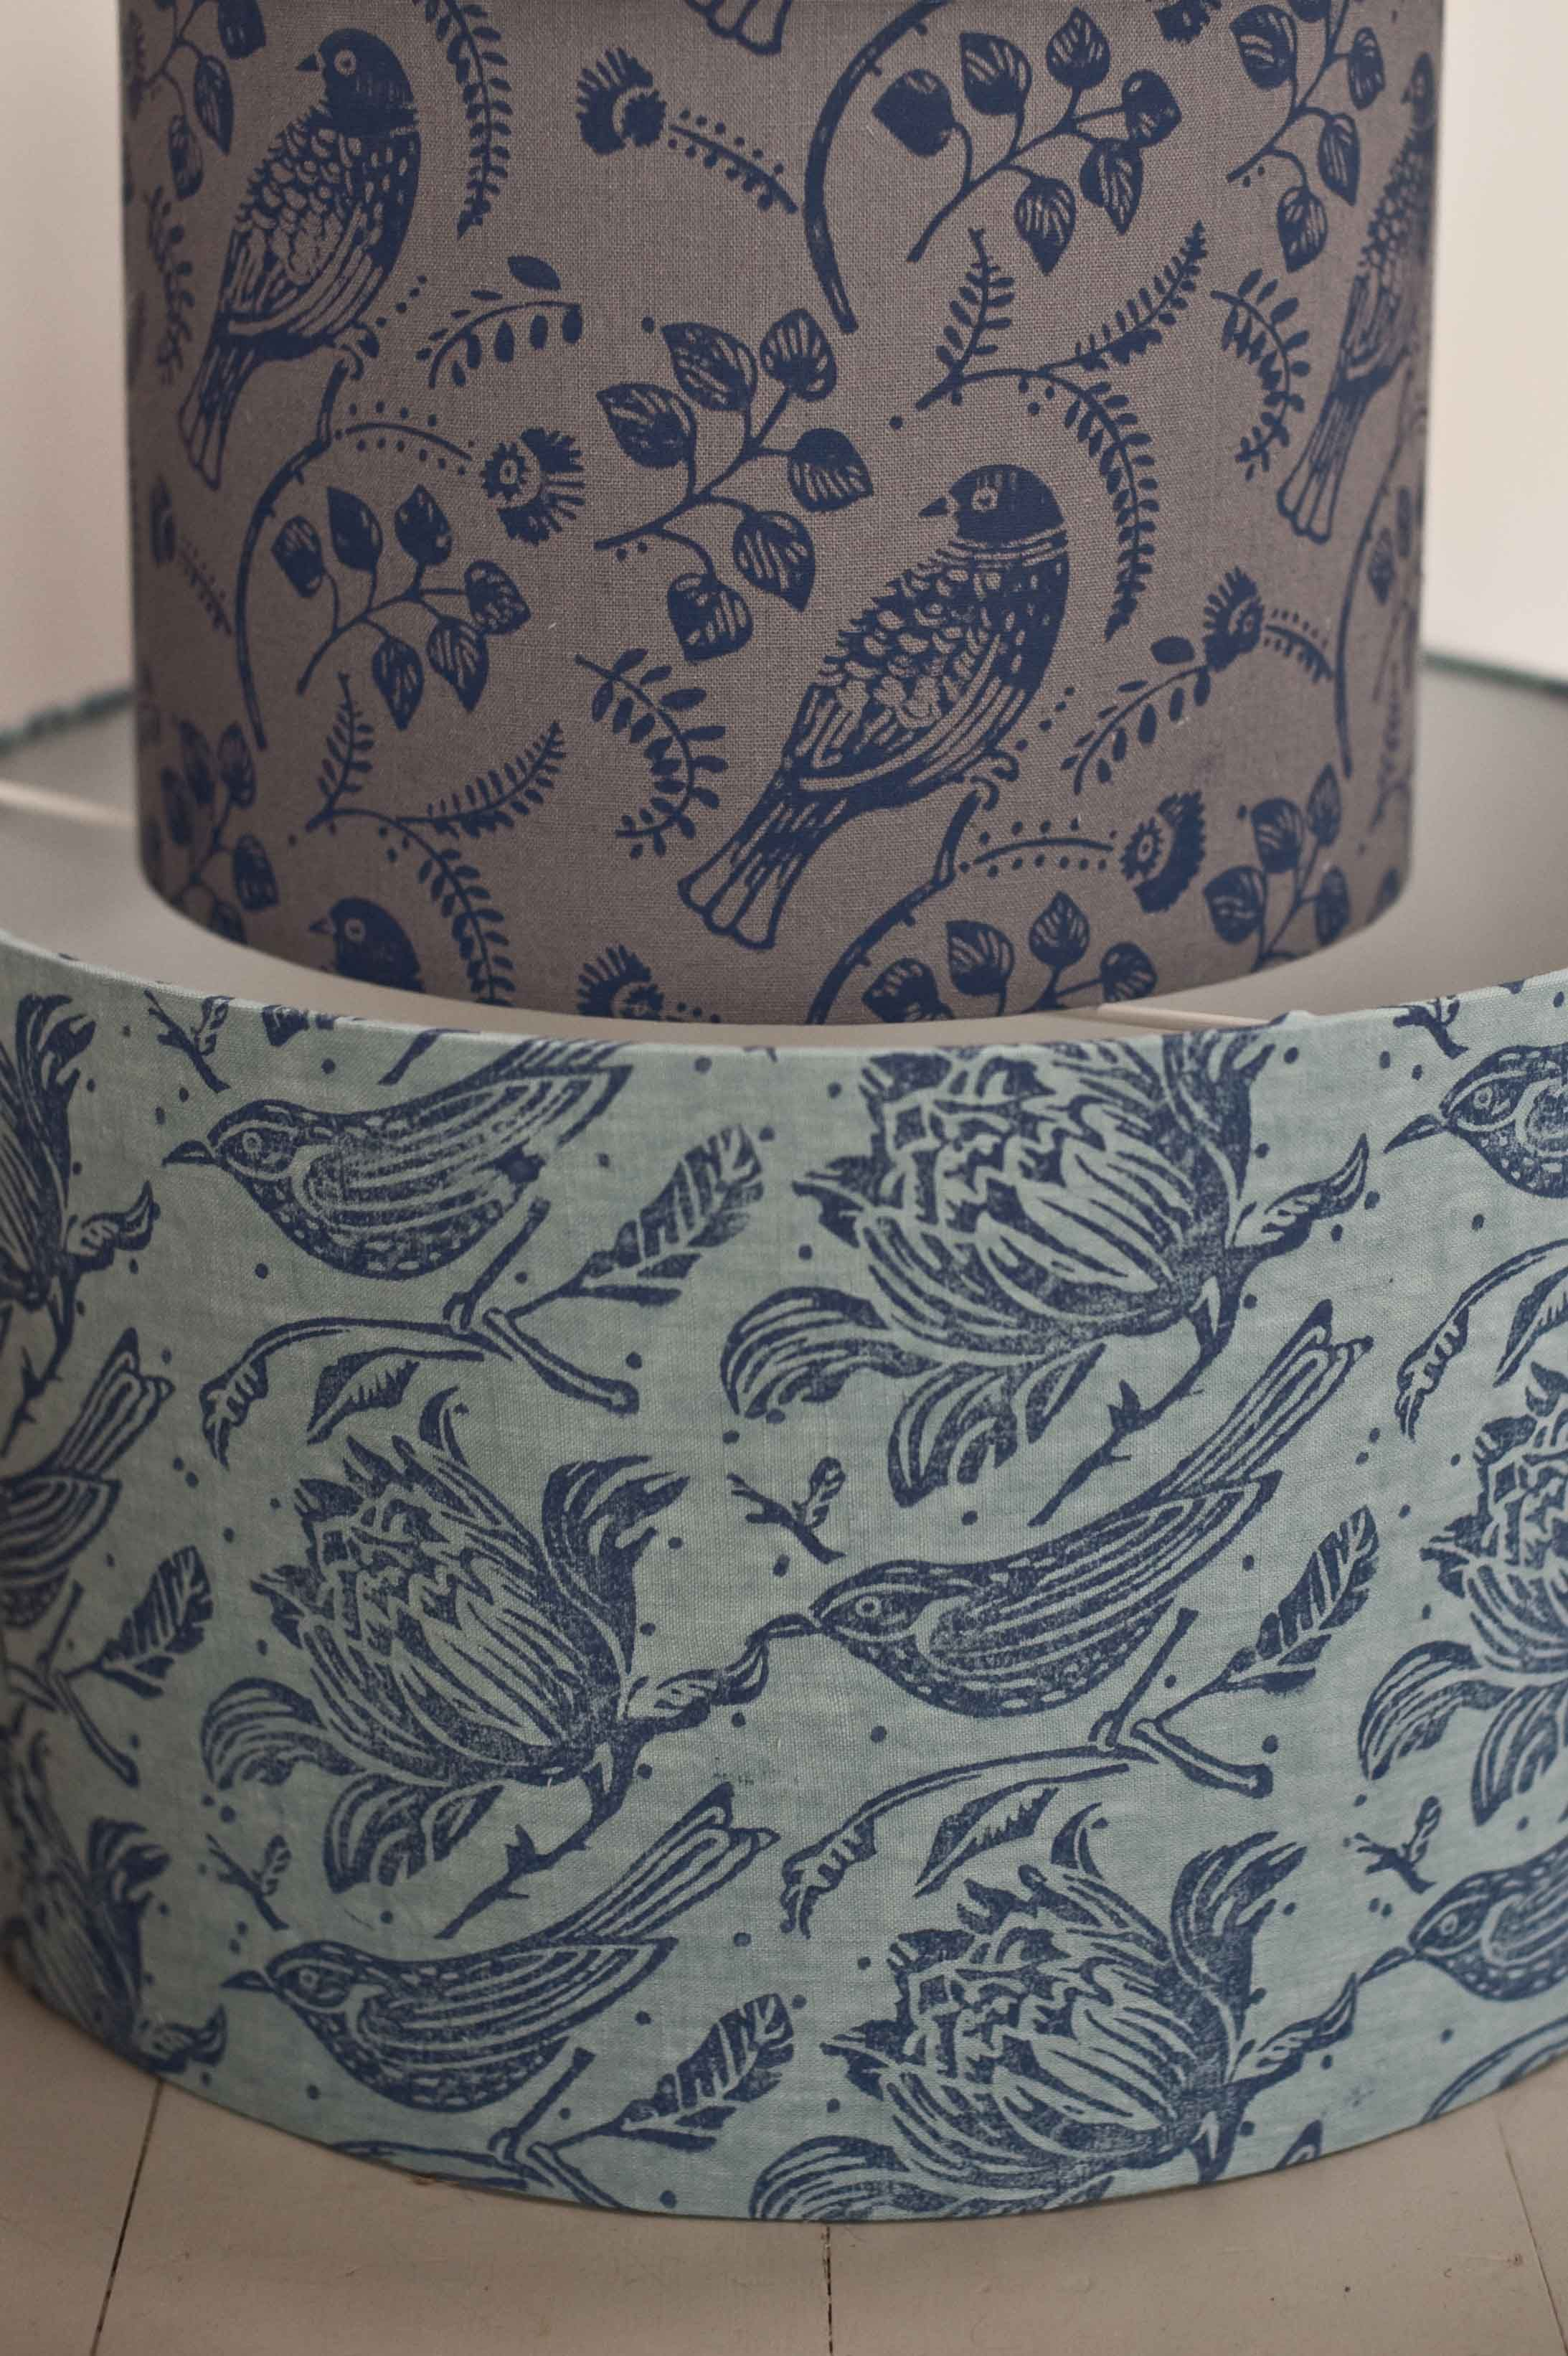 tuvi tussock lampshades printed with a patterned paint